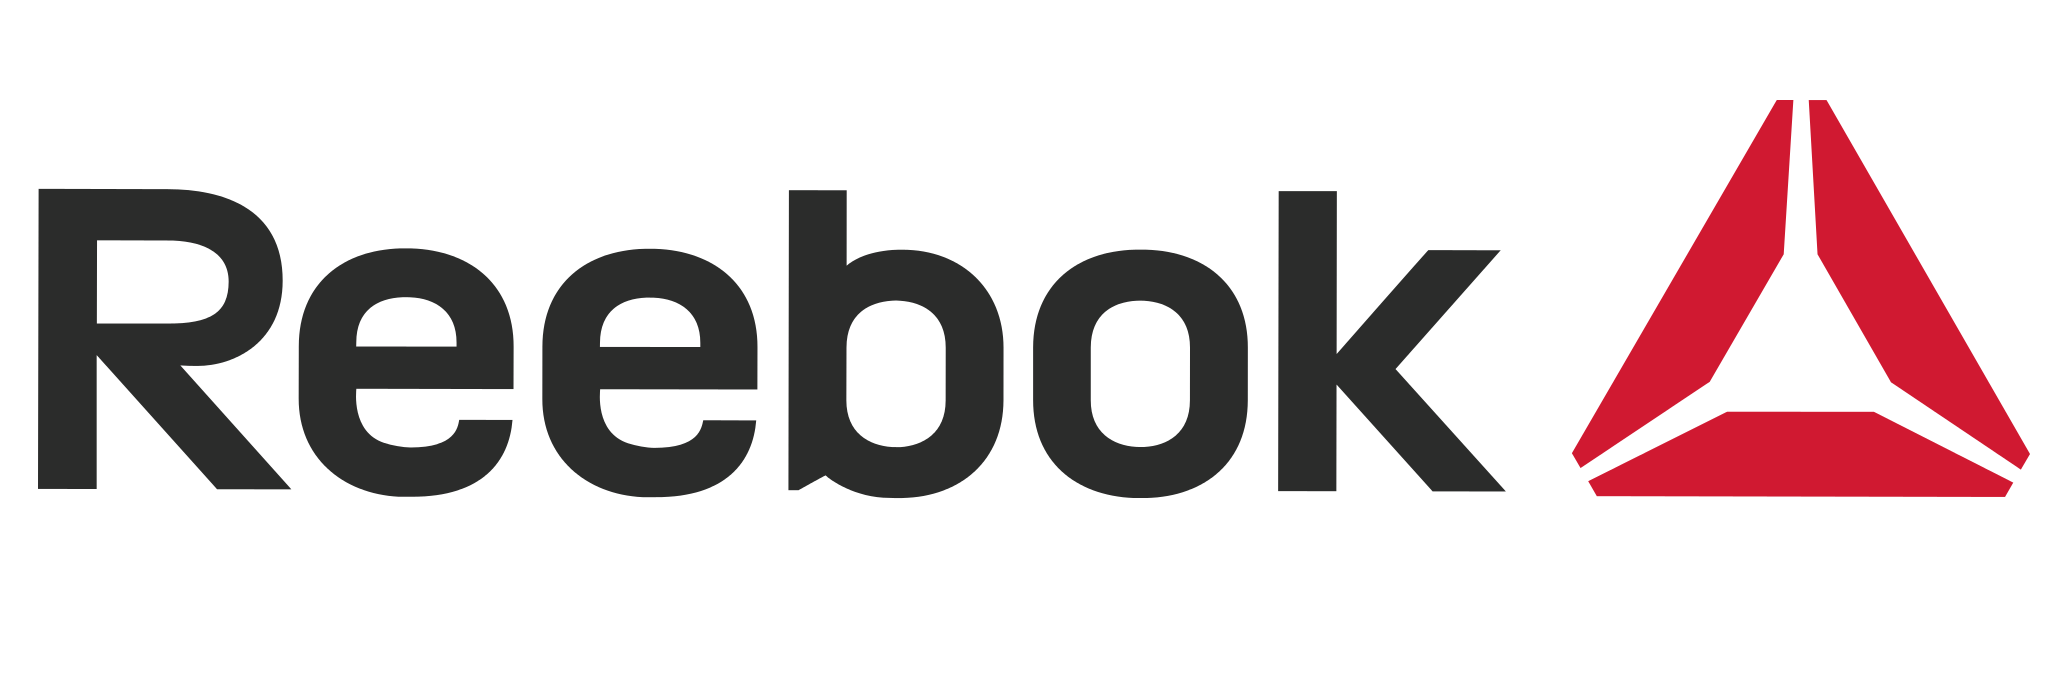 Reebok vector black and white. Logo symbol meaning history